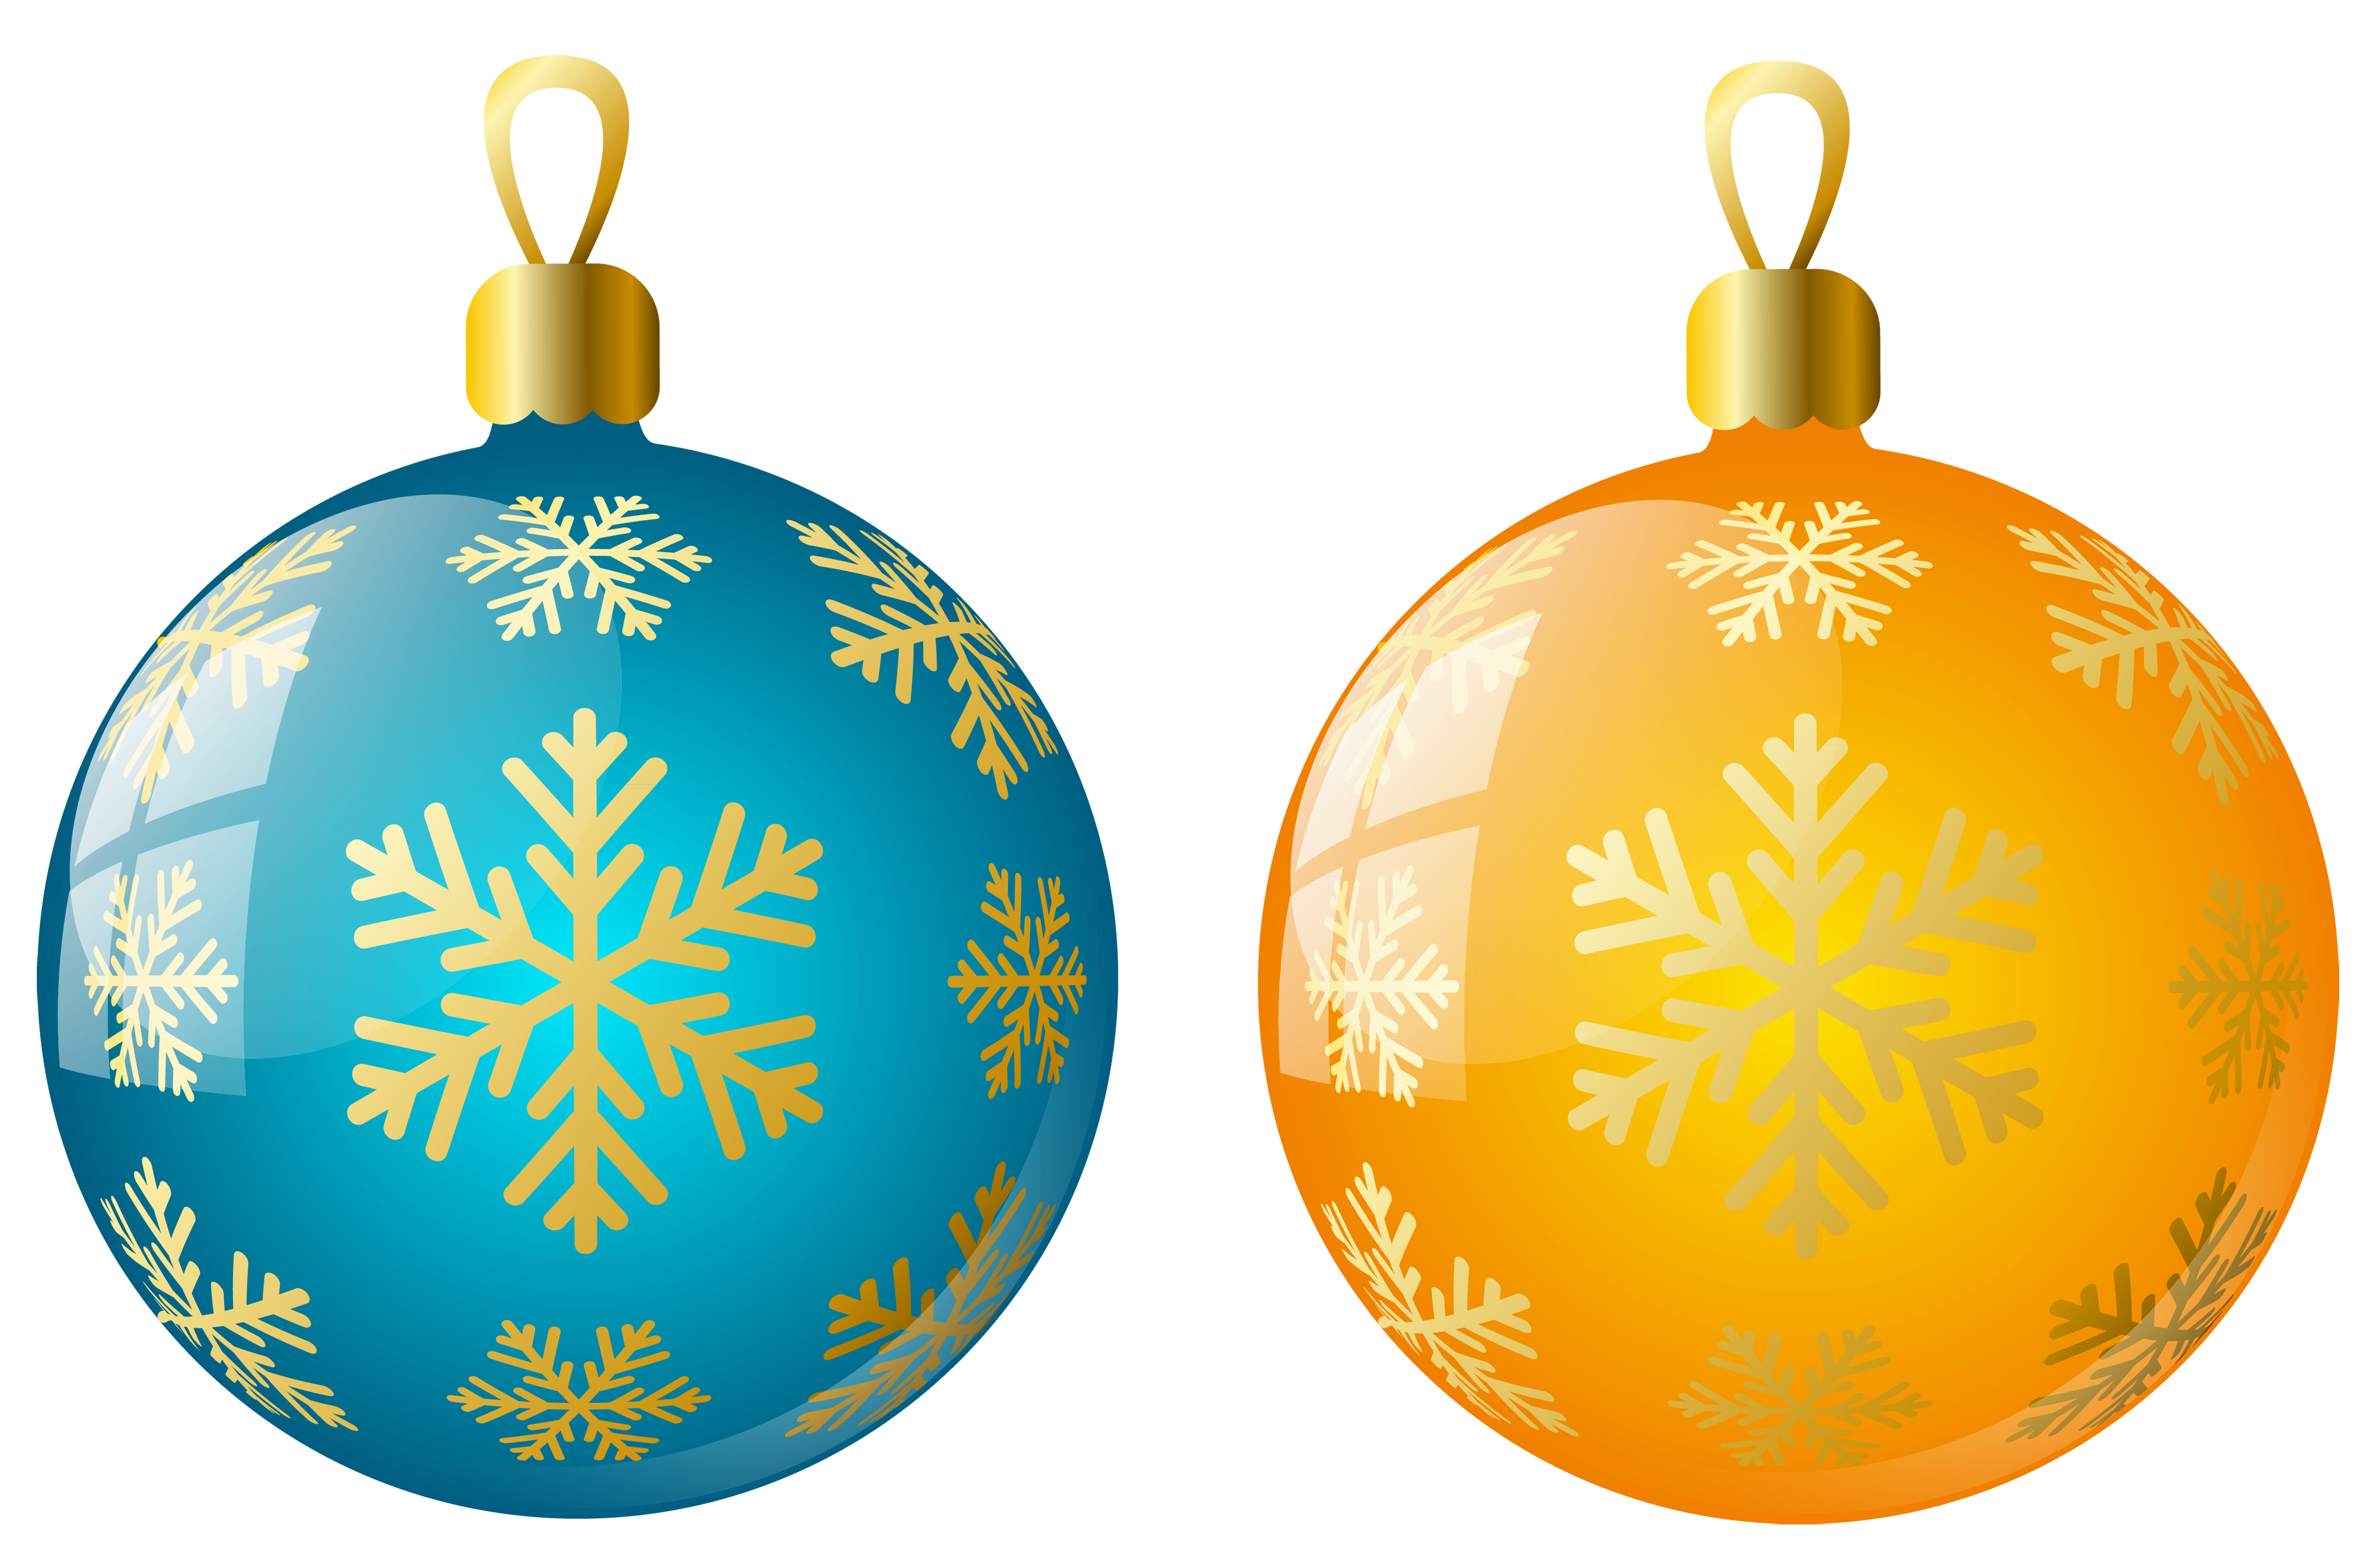 Yellow clipart ornament Size and Blue Ornaments full